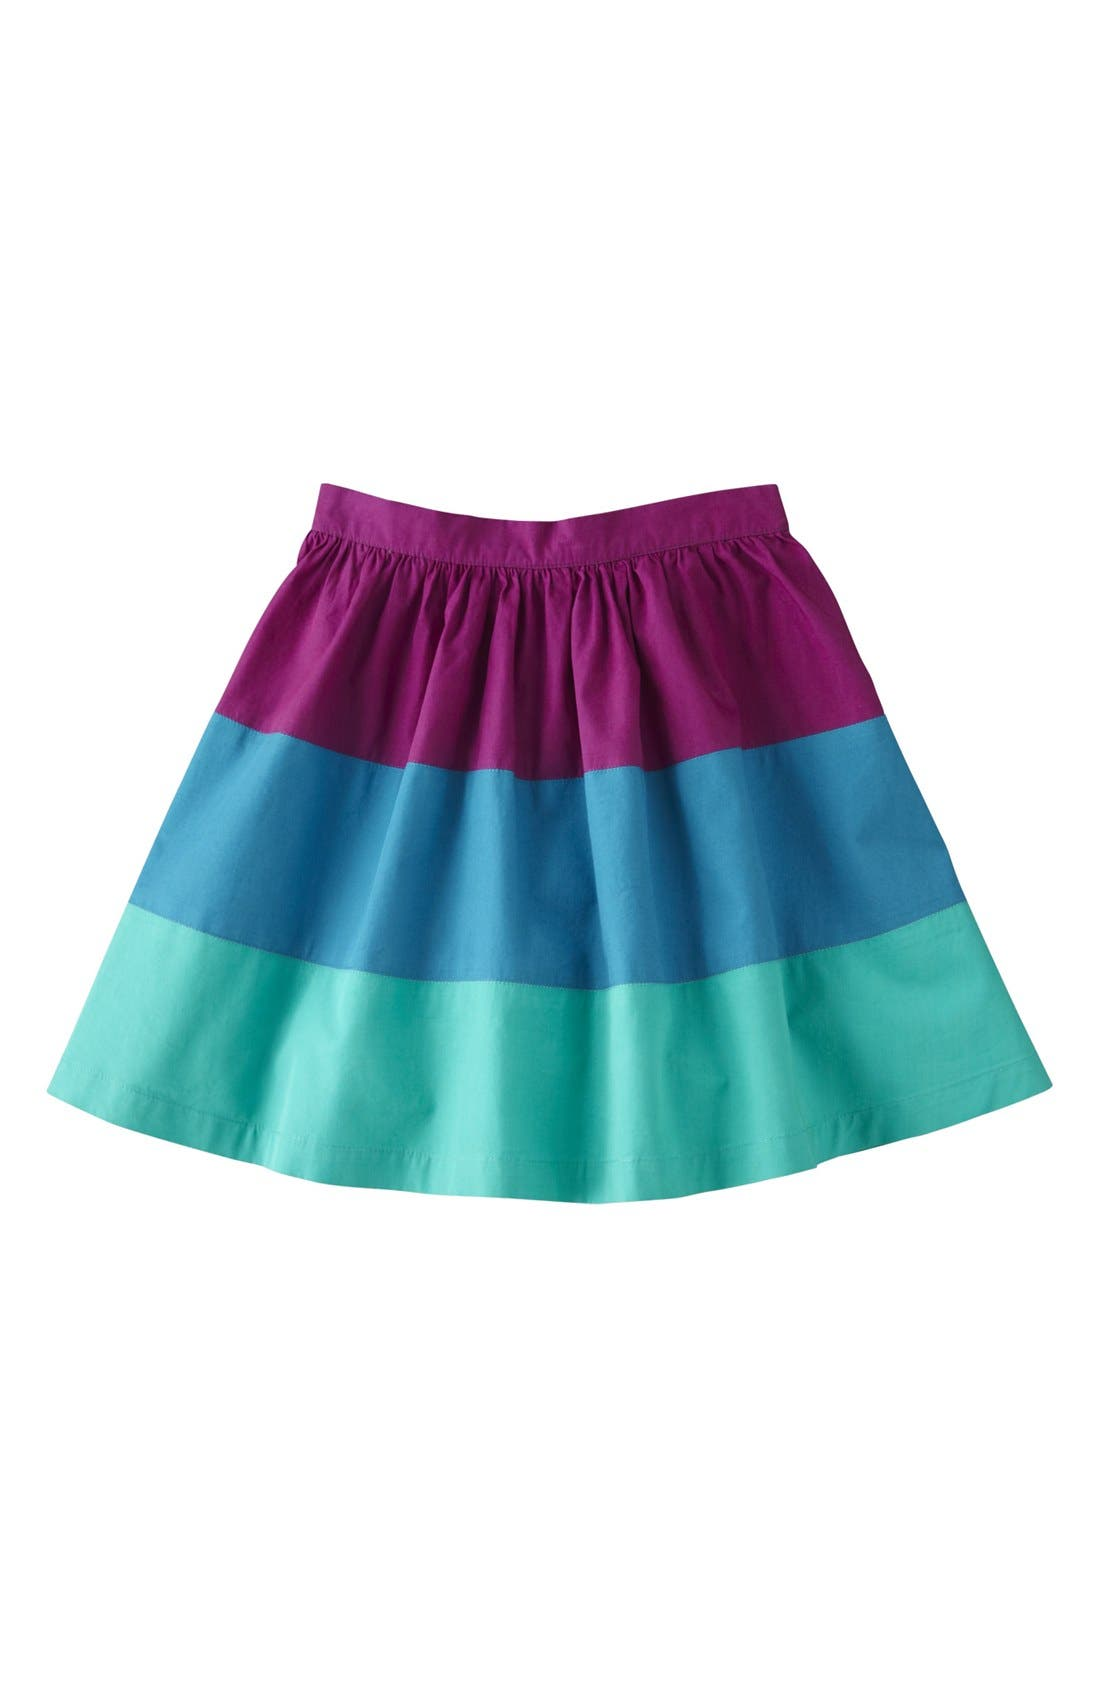 Main Image - Mini Boden Colorblock Skirt (Toddler Girls, Little Girls & Big Girls)